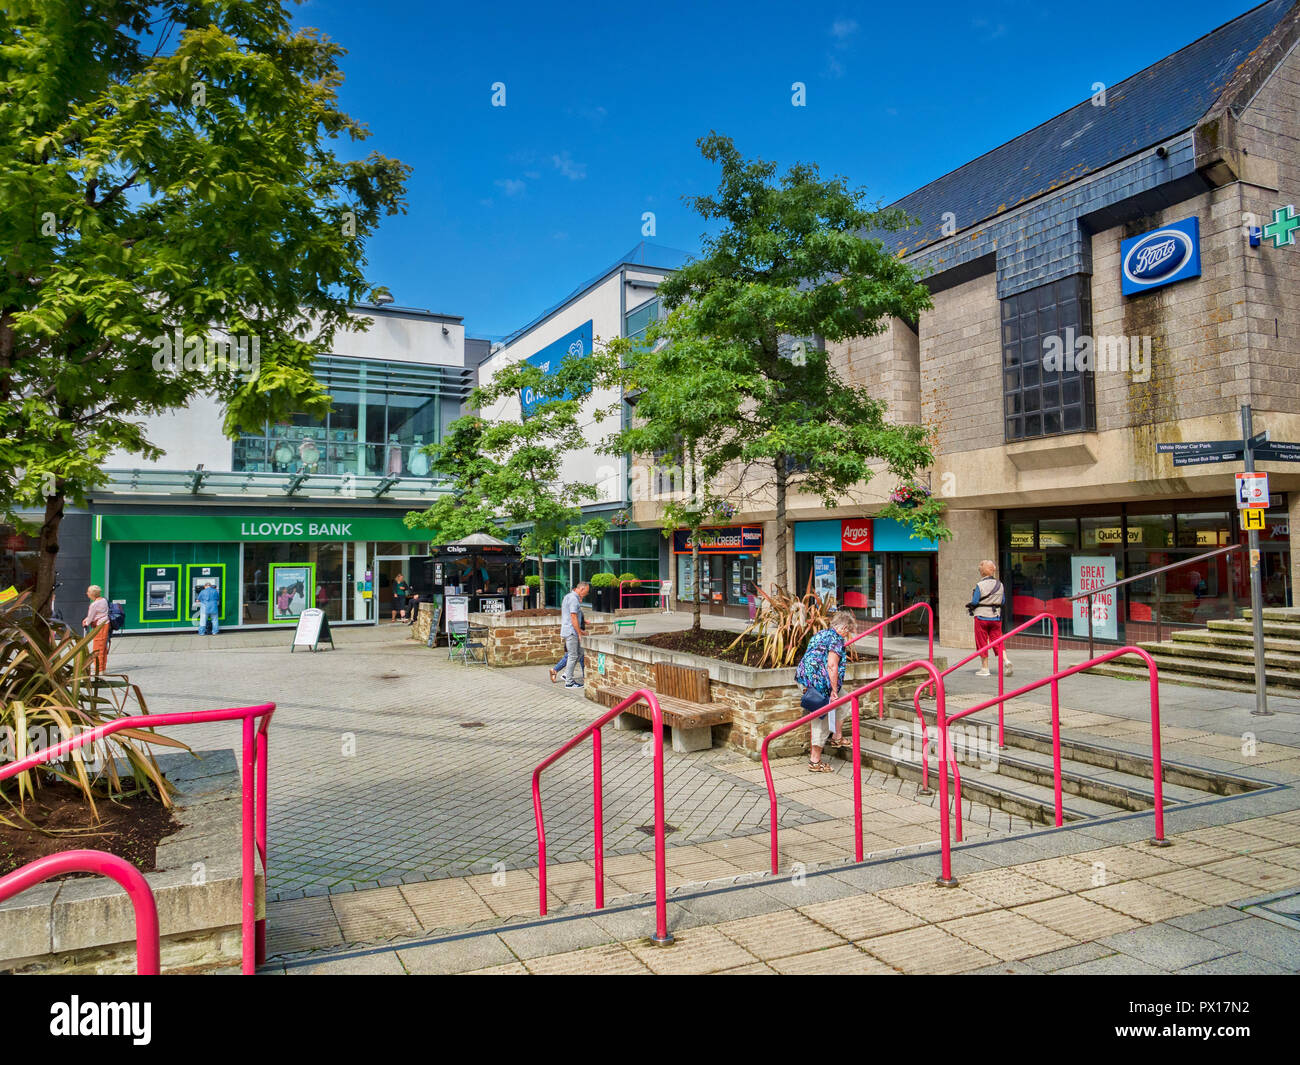 11 June 2018: St Austell, Cornwall, UK - Shops and shoppers in White River Place. - Stock Image